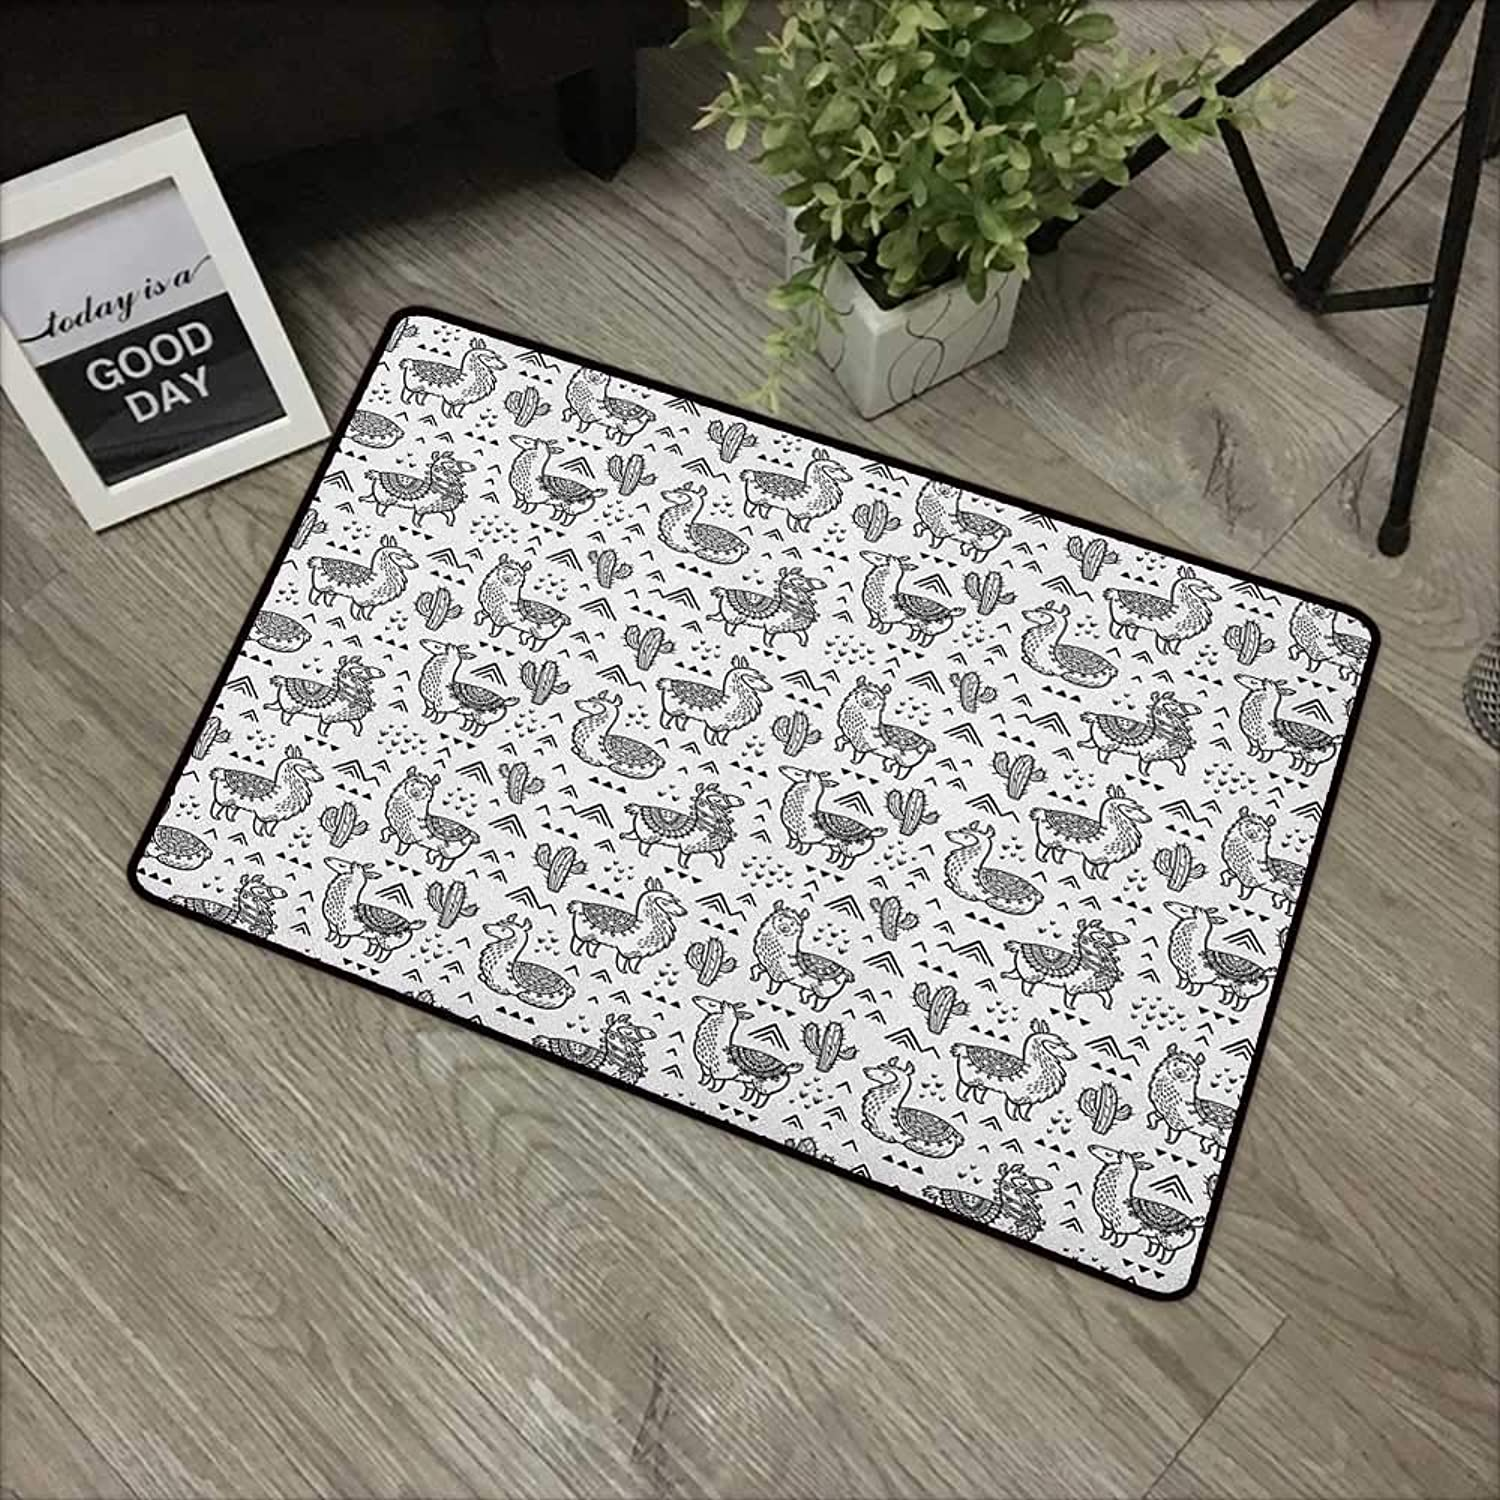 Hall mat W35 x L59 INCH Llama,Abstract Triangles with Doodle Style Alpacas in Monochrome Design Cartoon Pattern, Black White Non-Slip Door Mat Carpet